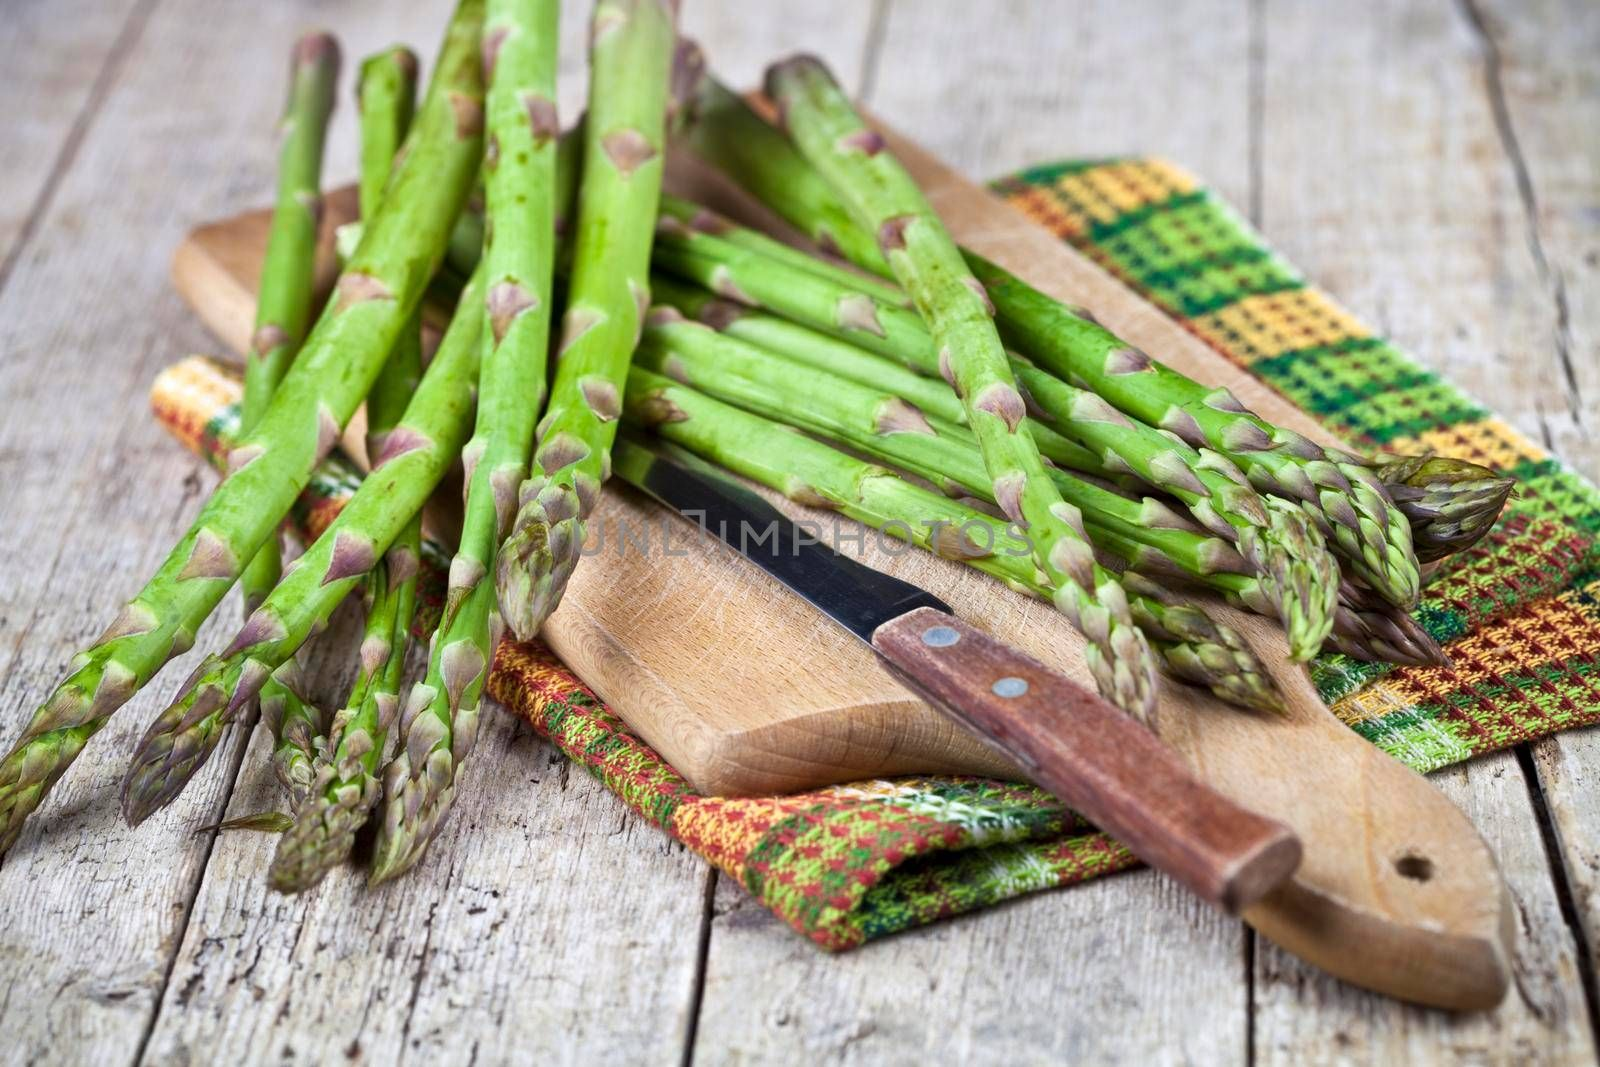 Fresh raw garden asparagus and knife closeup on cutting board on rustic wooden table background. Green spring vegetables and cotton napkin. Edible sprouts of asparagus.